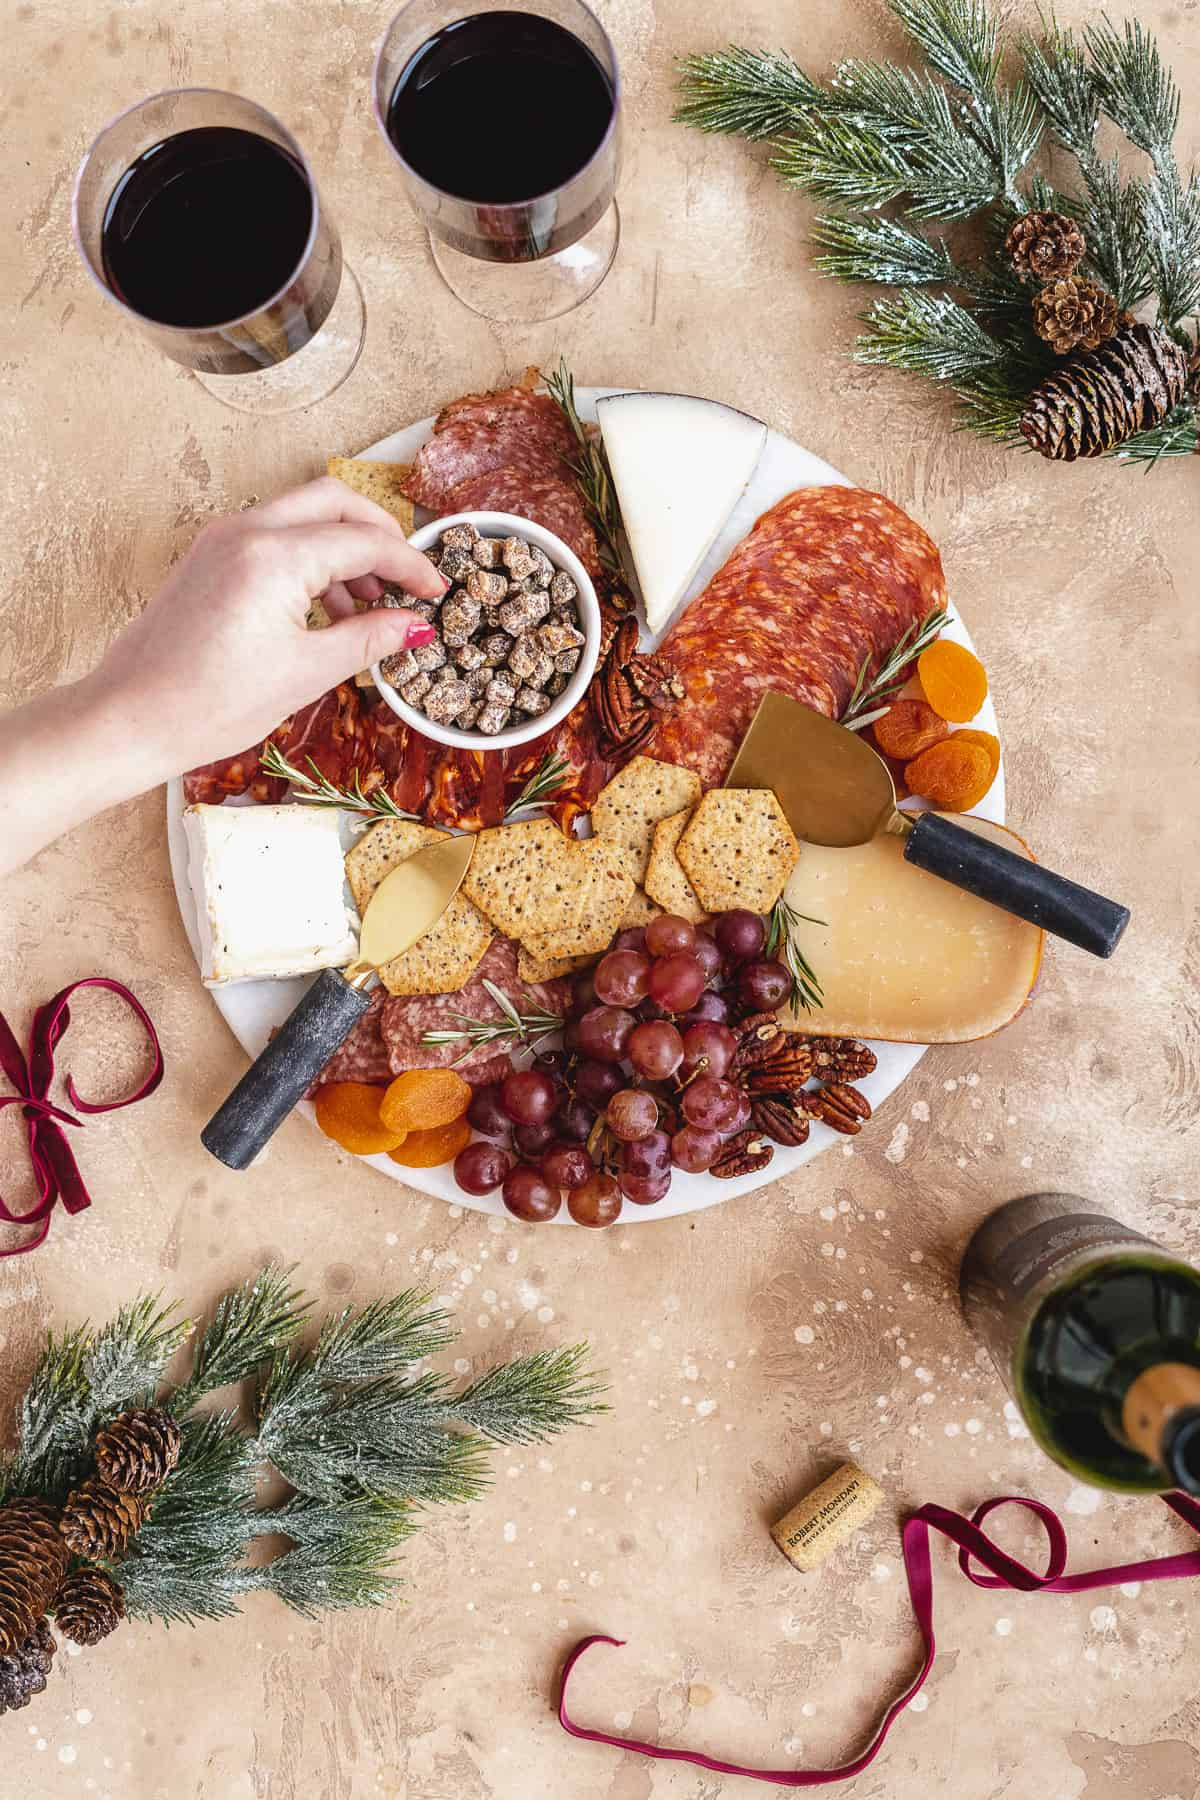 Overhead photo of round white marble cake platter filled with assorted meats, cheeses, fruits, crackers and nuts.  Two glasses of red wine sit nearby.  Hand is reaching to pick up some nuts from the charcuterie board.